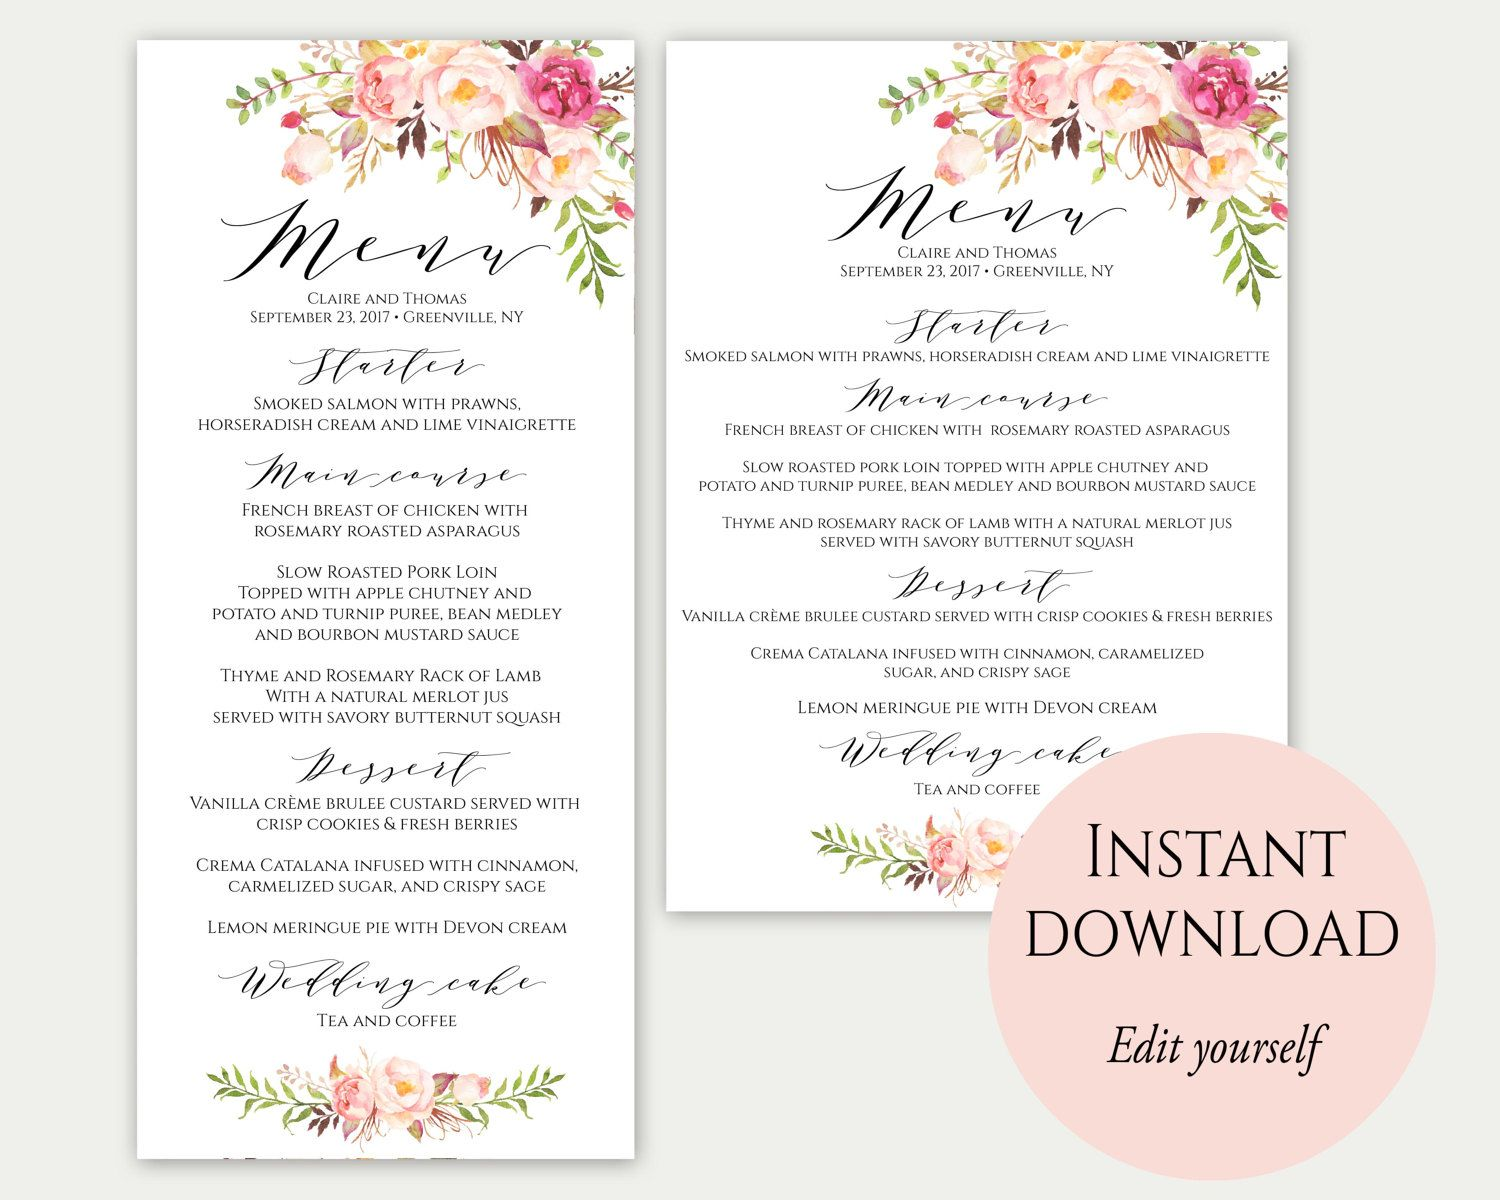 Wedding Menu Template 5x7 4x9 Wedding Menu Cards Menu Etsy Menu Card Template Wedding Menu Template Wedding Menu Cards